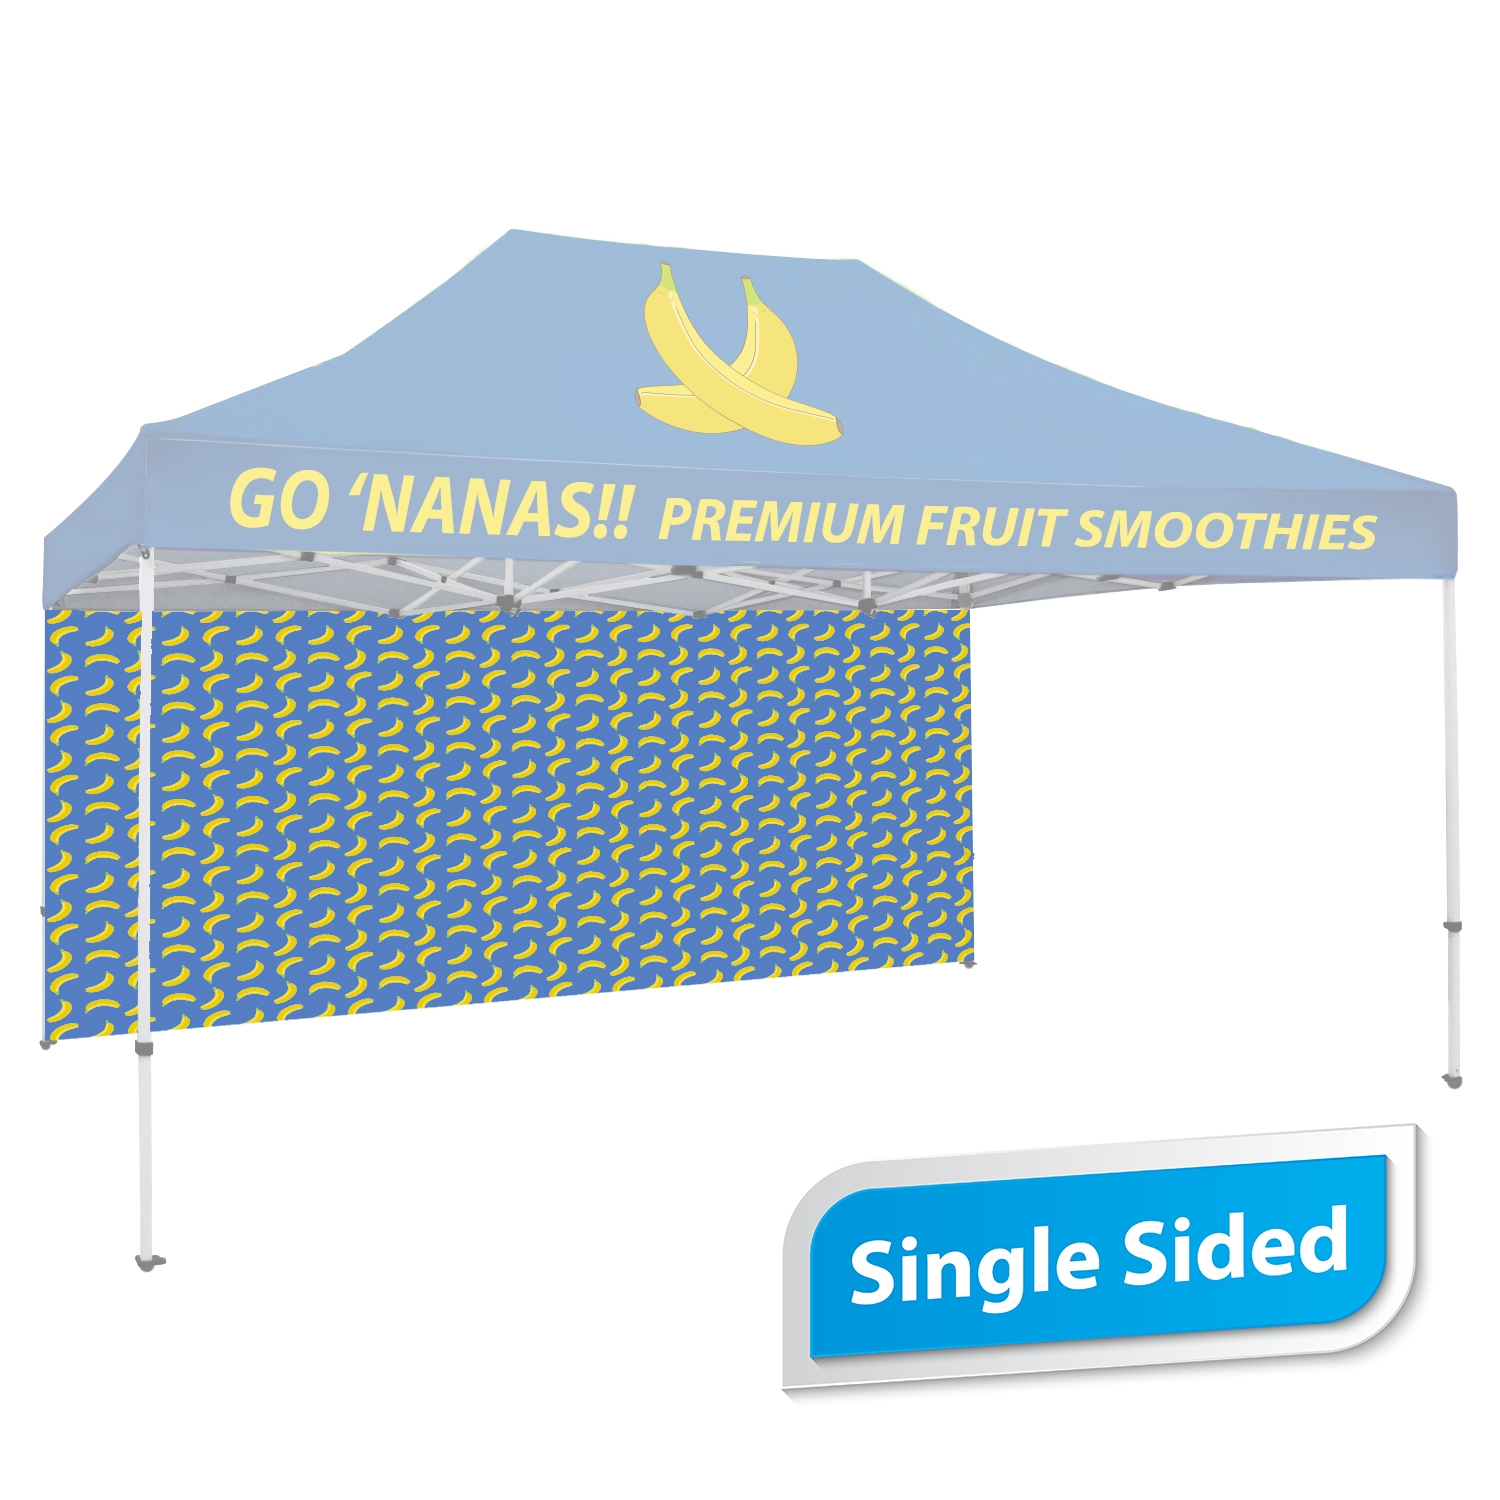 15 FT. Tent Back Wall - Full Color Single-Sided Graphic